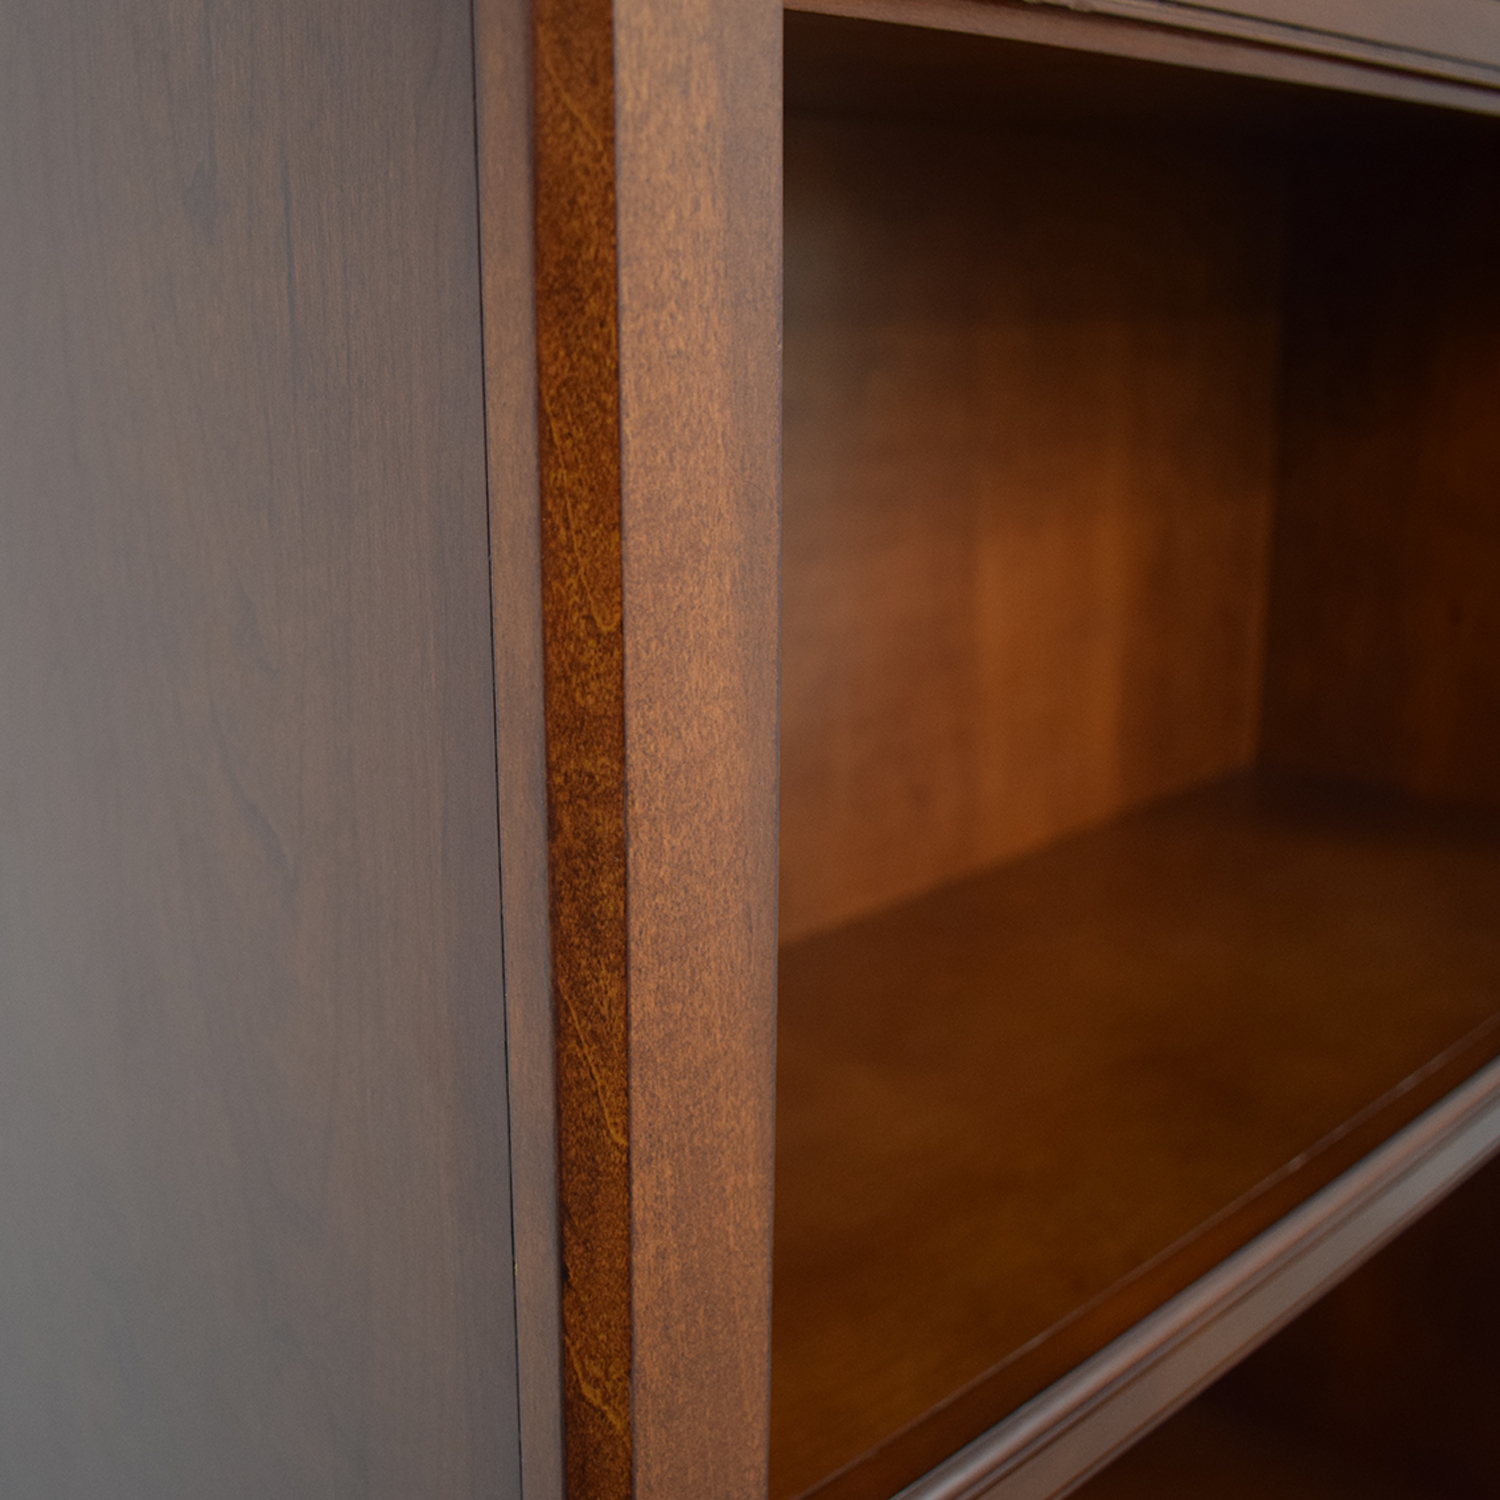 Raymour & Flanigan Raymour & Flanigan Bookcase dimensions